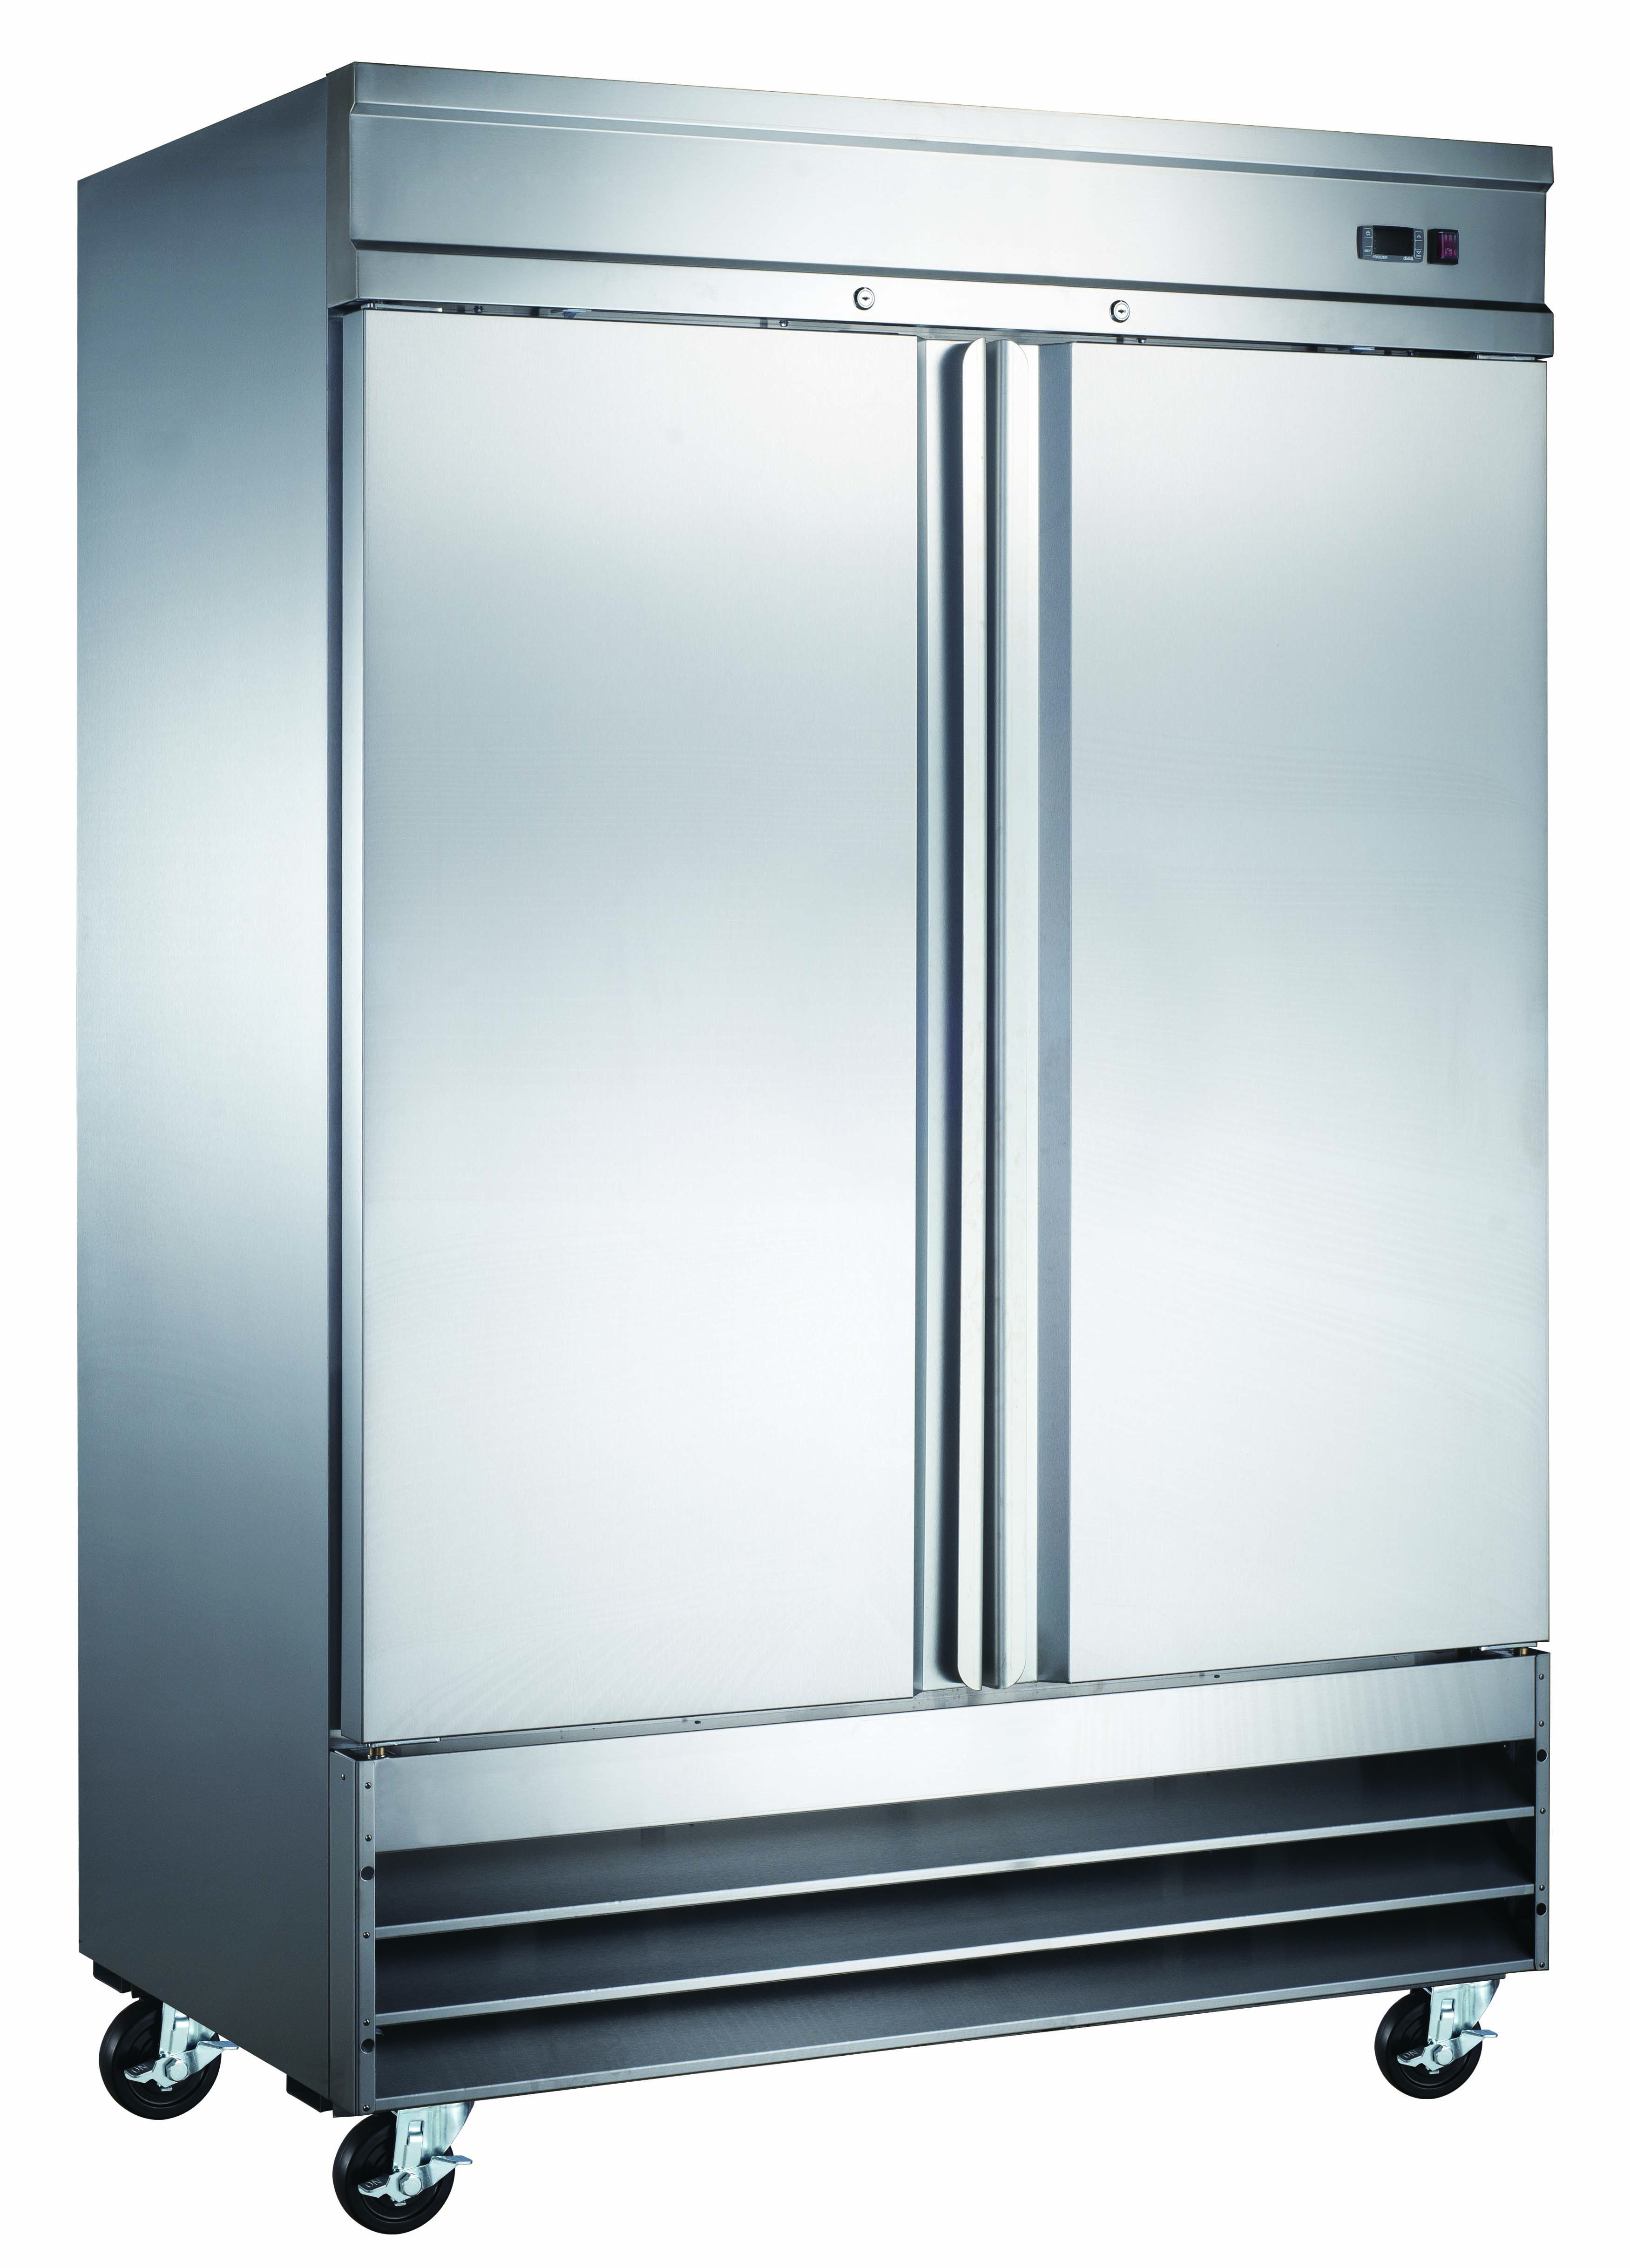 HiendL 2-S/S door Reach-in Freezer